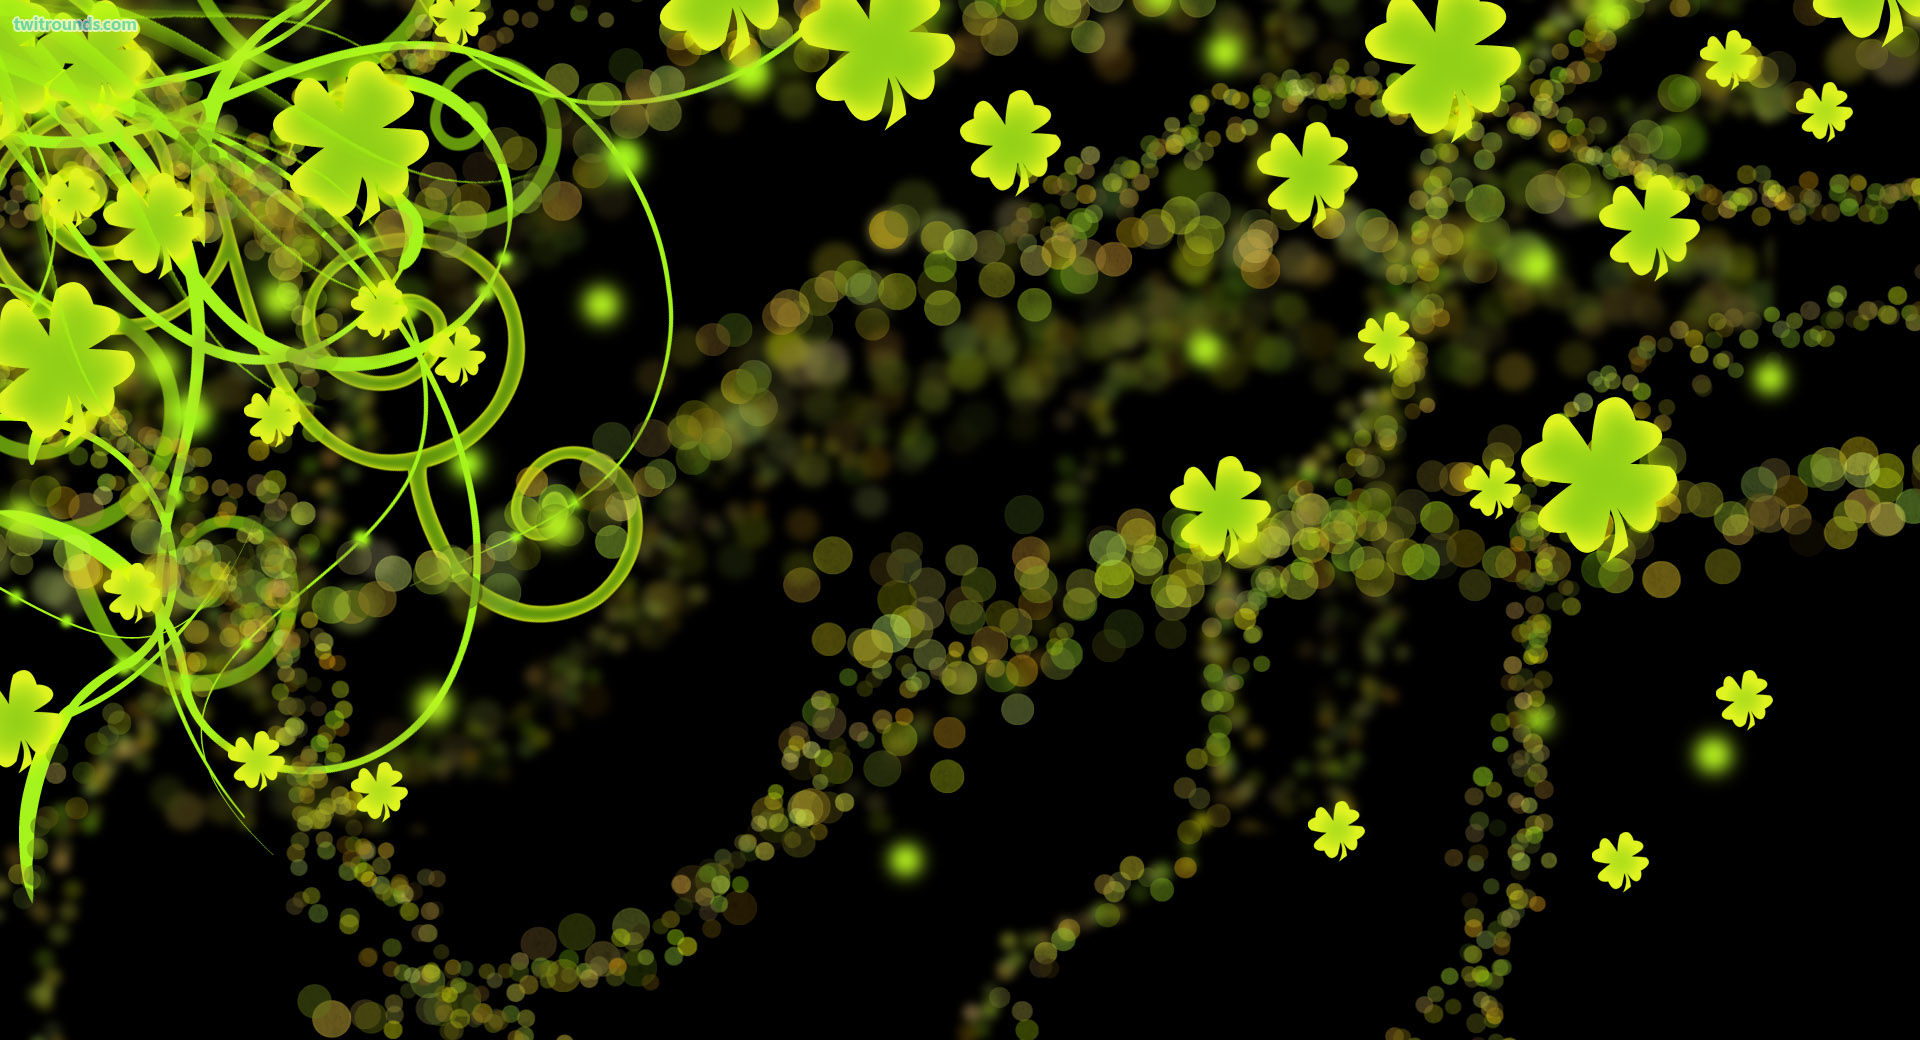 High Resolution St Patricks Day Wallpaper Hd   1920x1040 Wallpaper 1920x1040